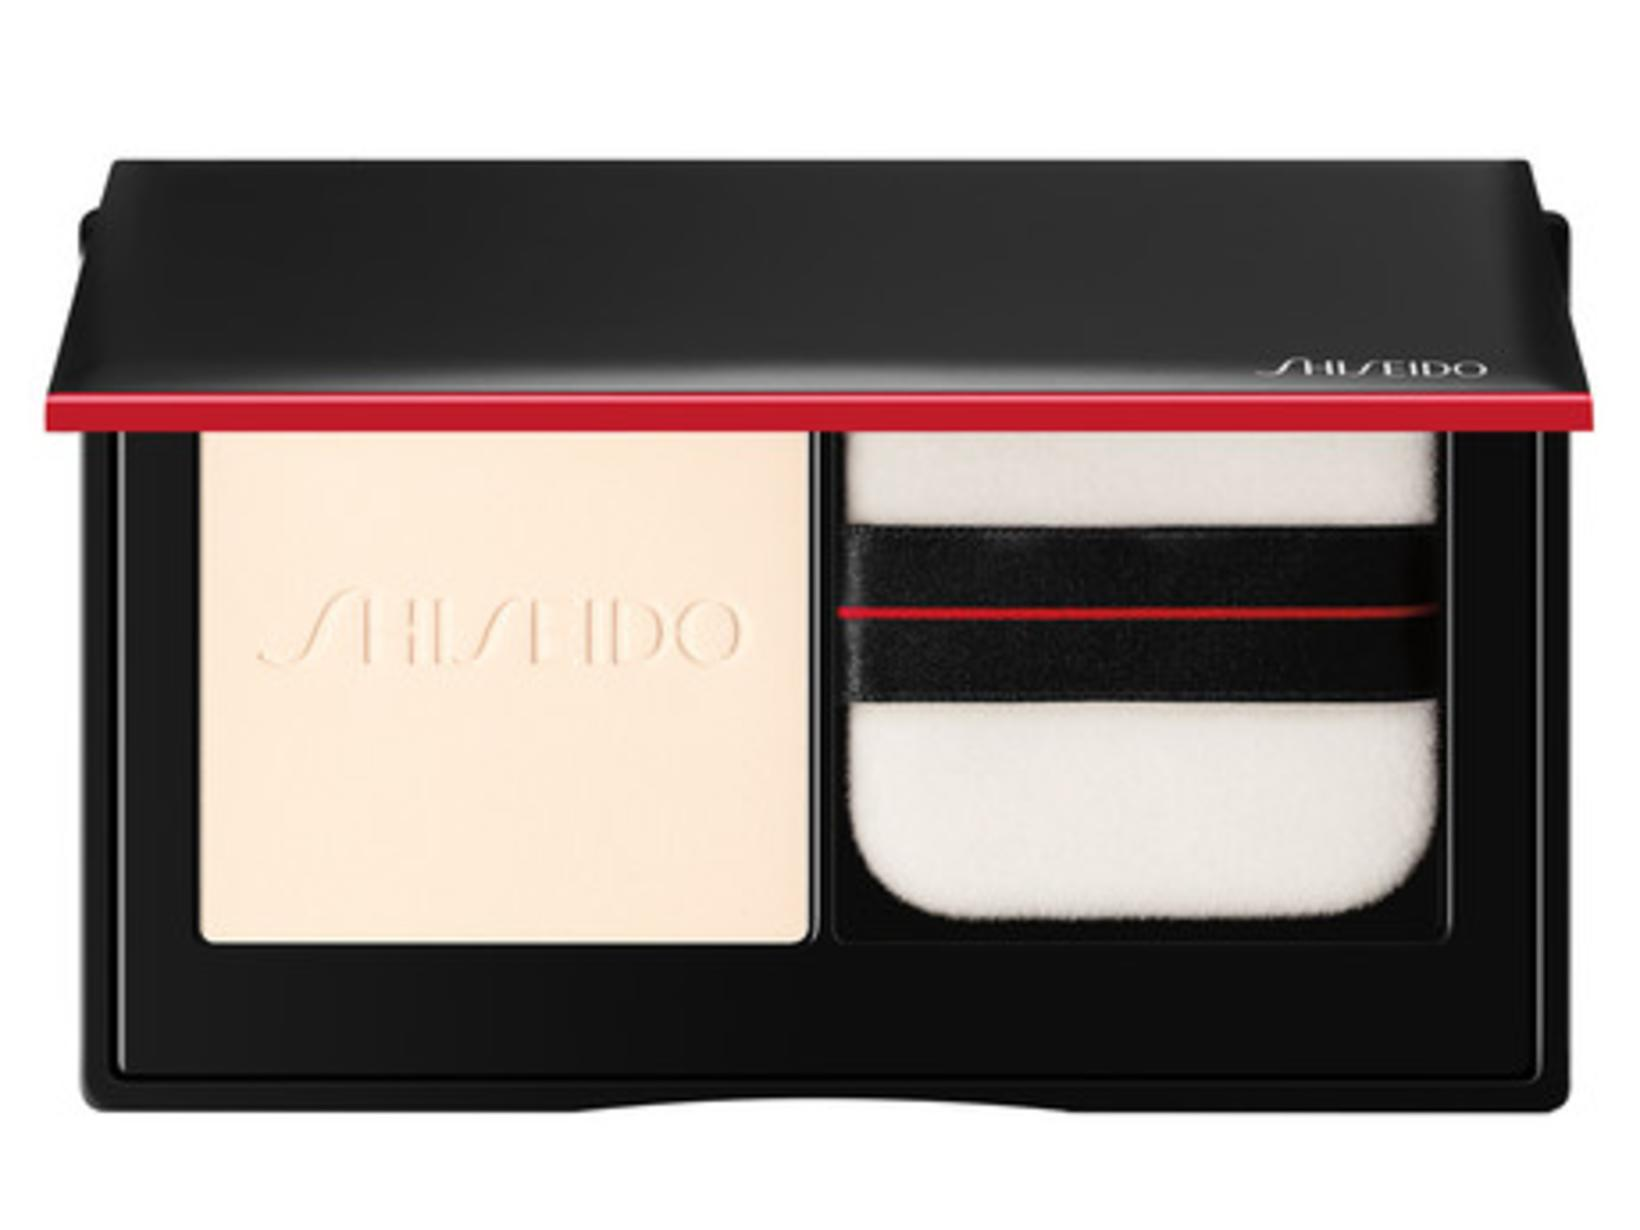 Synchro Skin Invisible Silk Pressed Powder mattar húðina og dregur ...